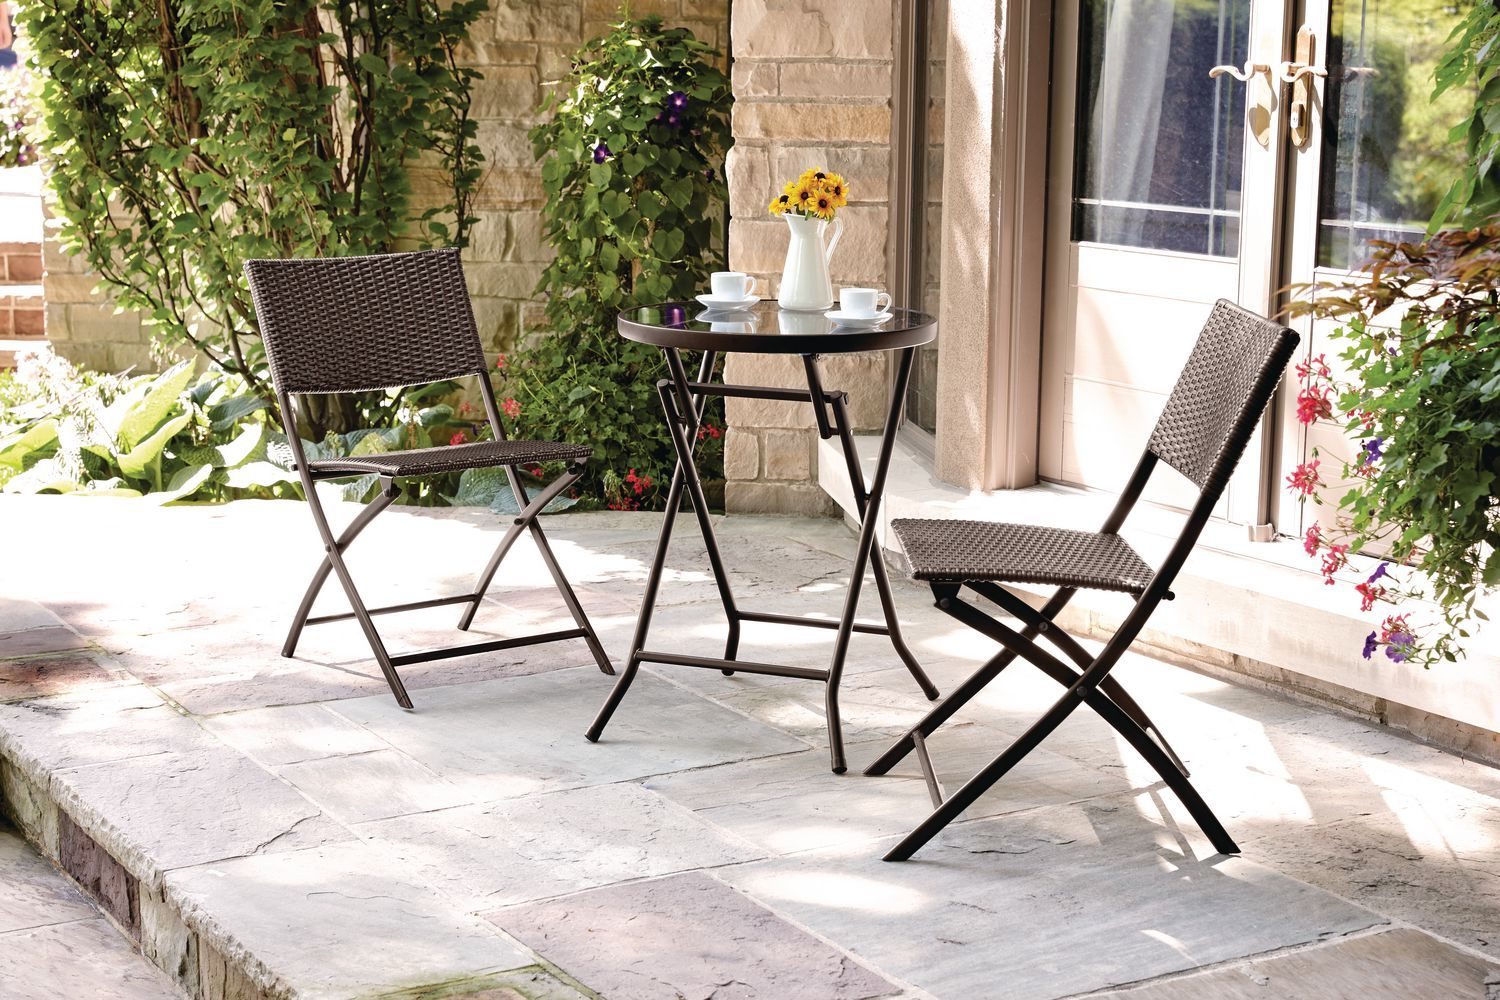 hometrends 3 Piece Wicker Bistro Set Walmart 98.00